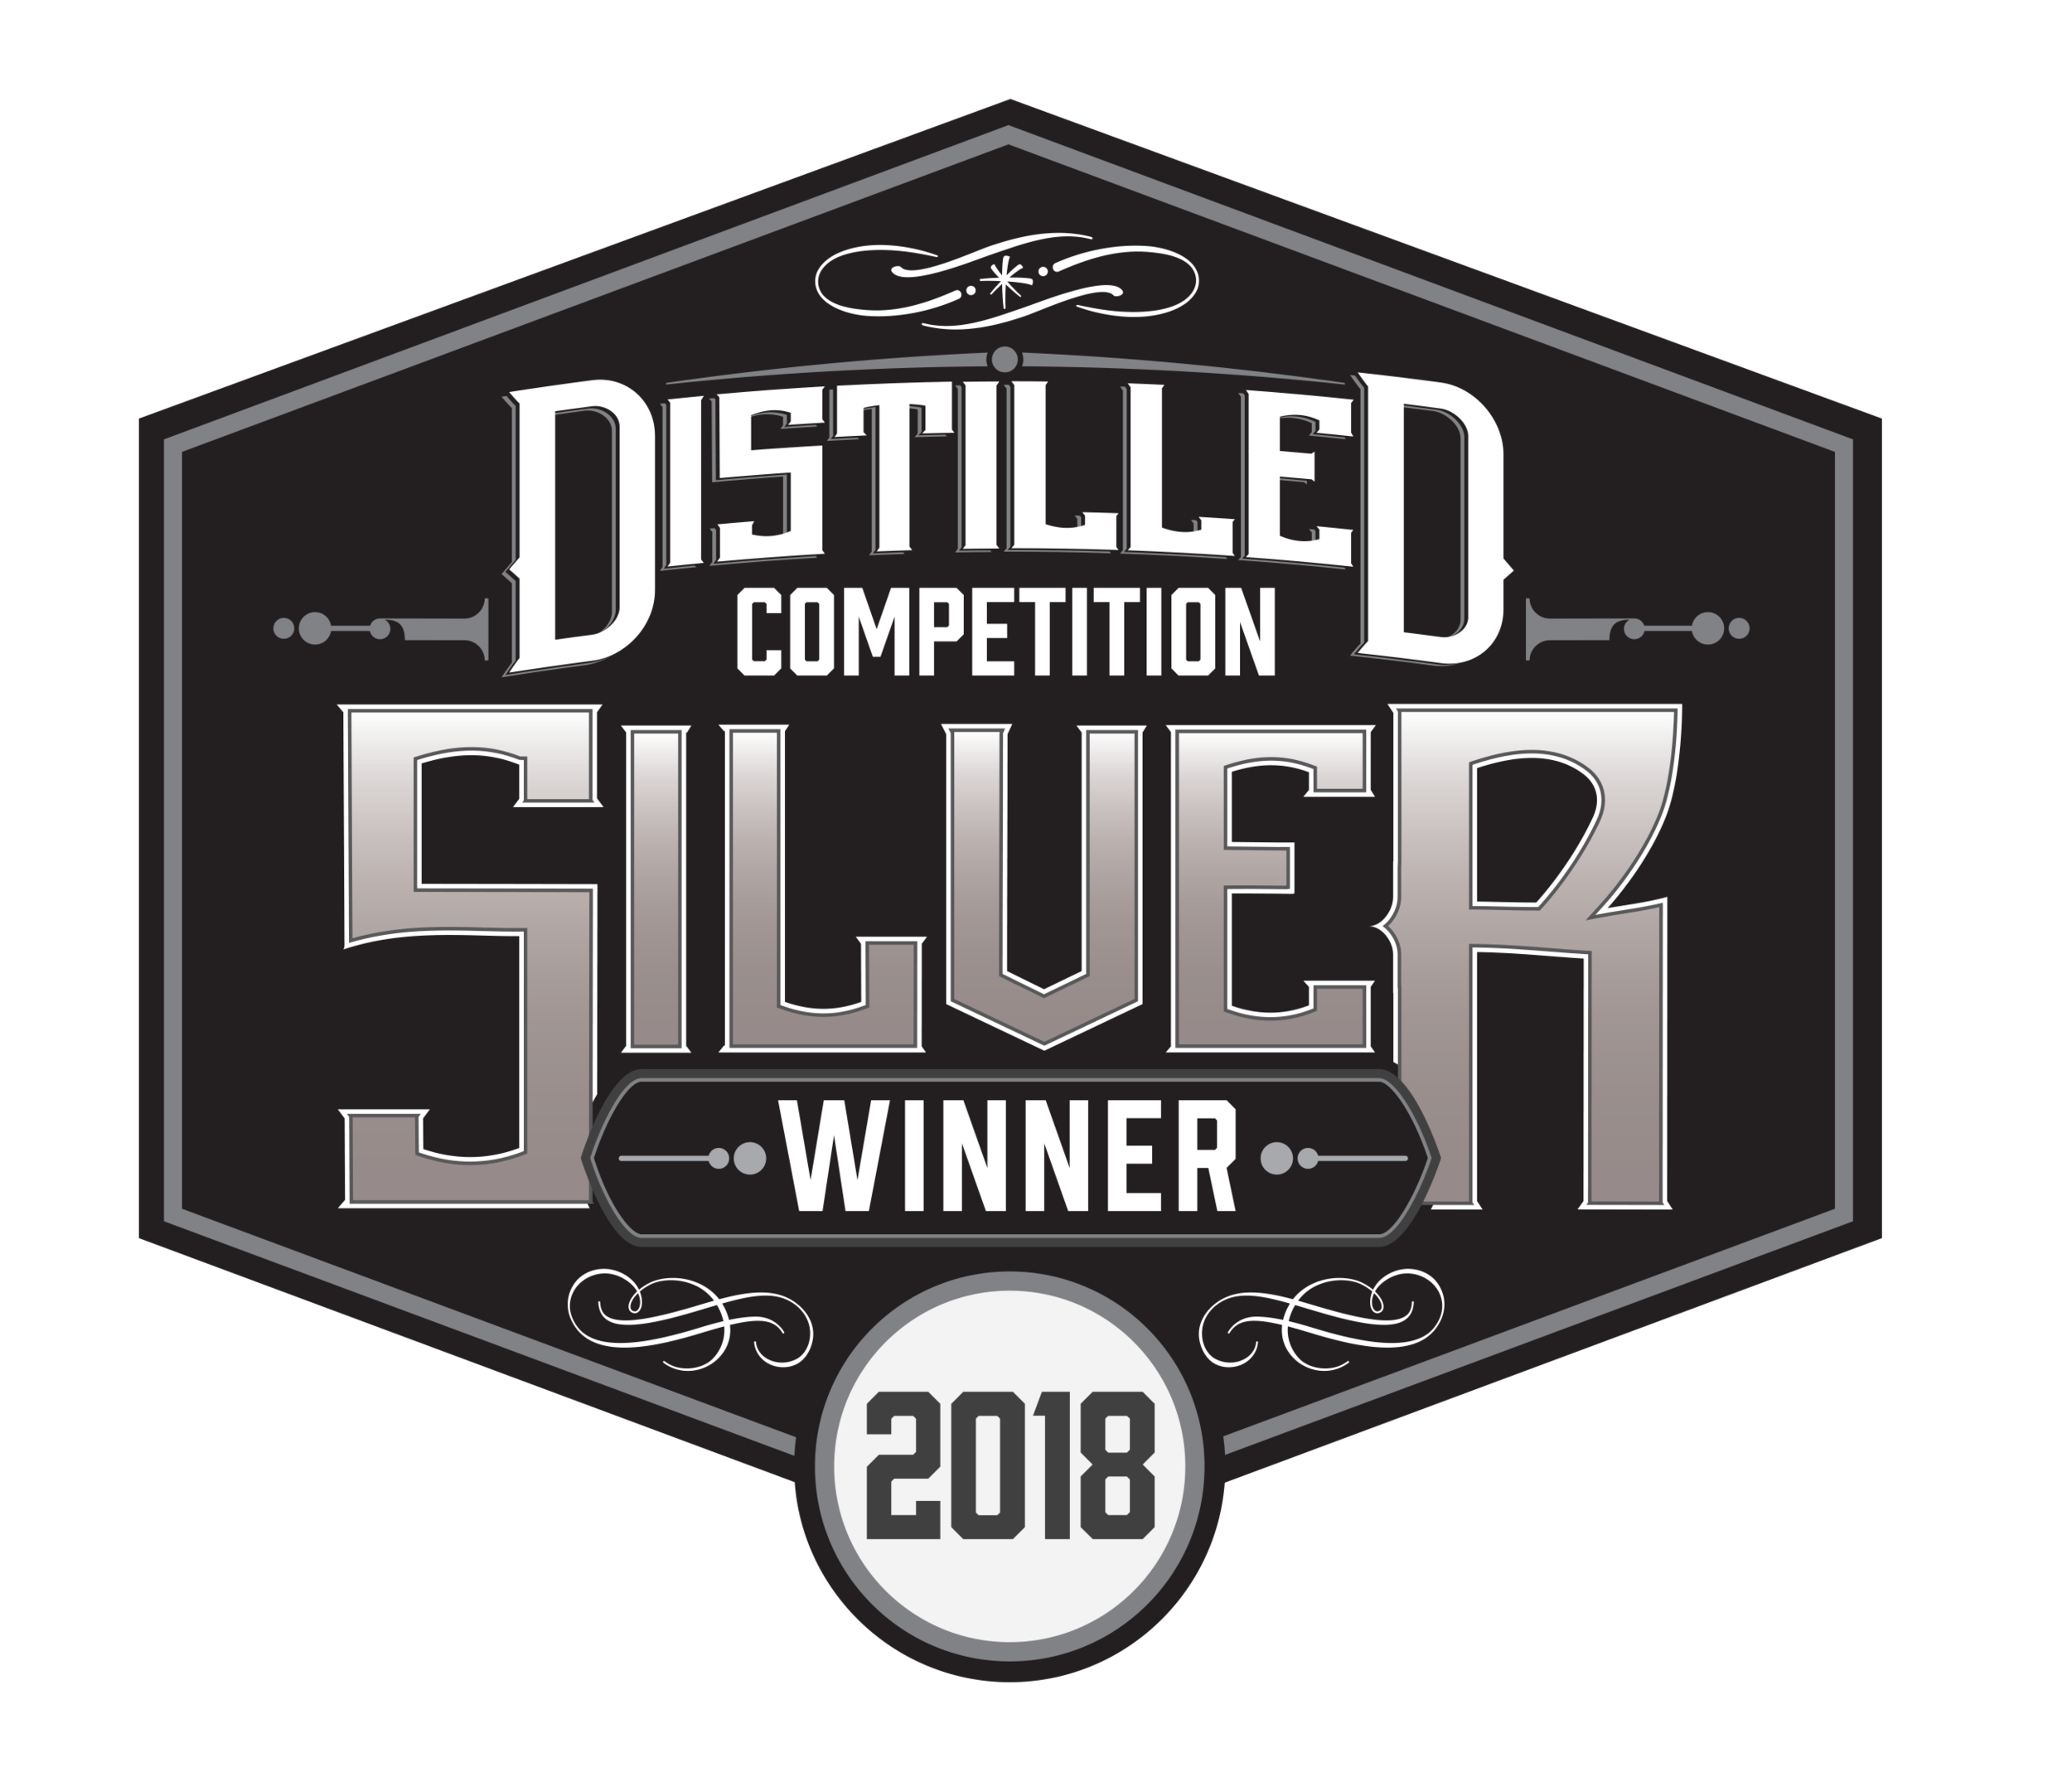 SILVER MEDAL Award WINNER of San Diego California's 2018 Distilled Spirits Competition! - WILD RAG® MESQUITE BEAN VODKA -The Distiller's Specialty Premium Vodka is the only Mesquite Bean Vodka in the World!